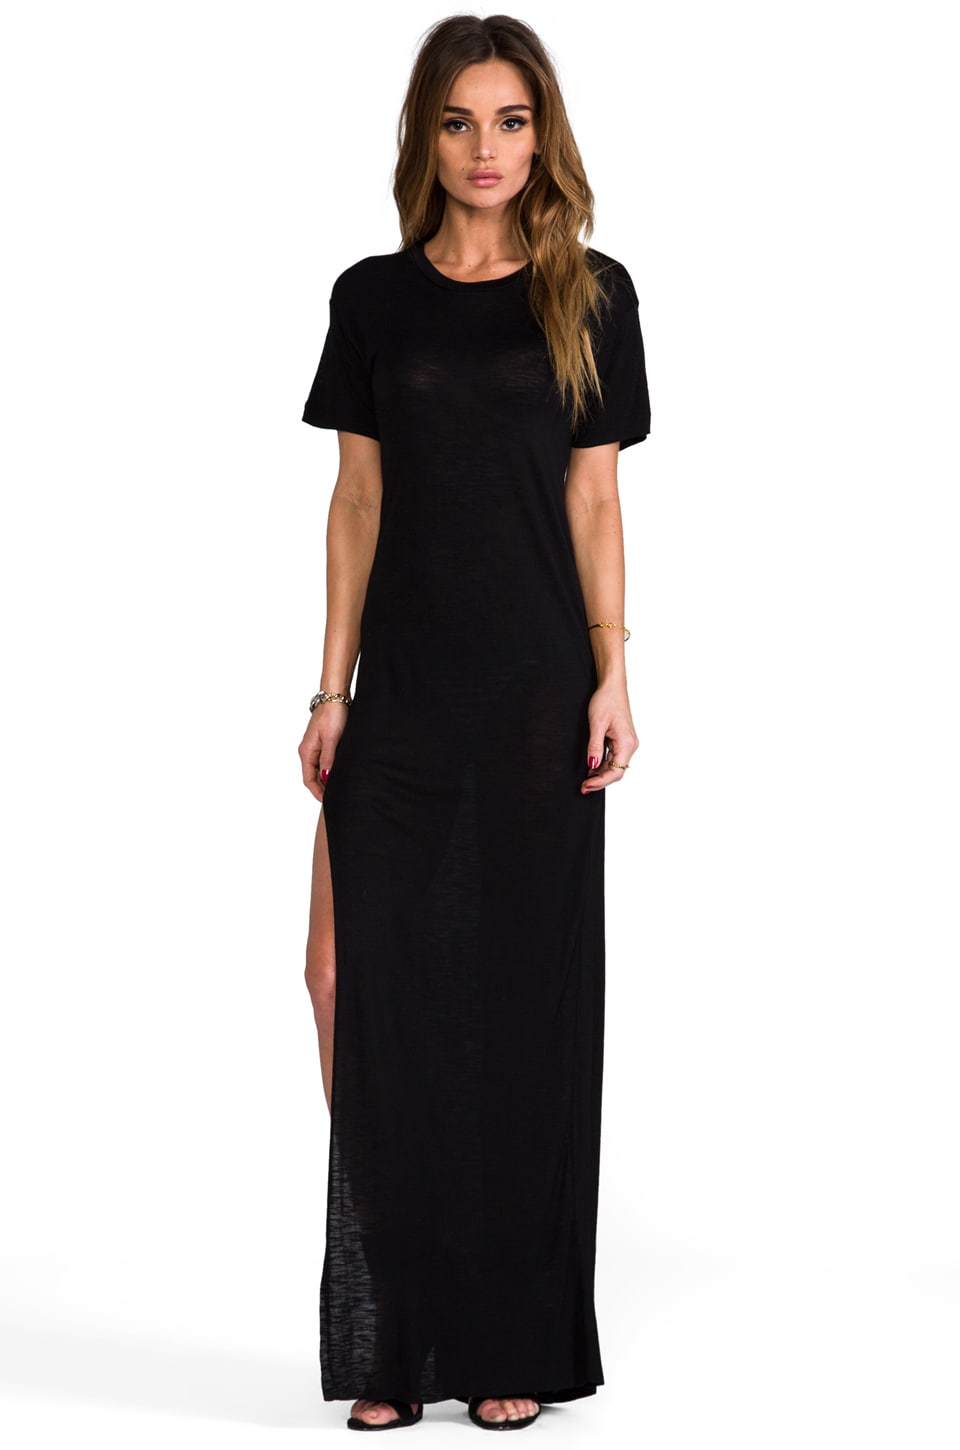 Pencey Standard Long Dress in Black